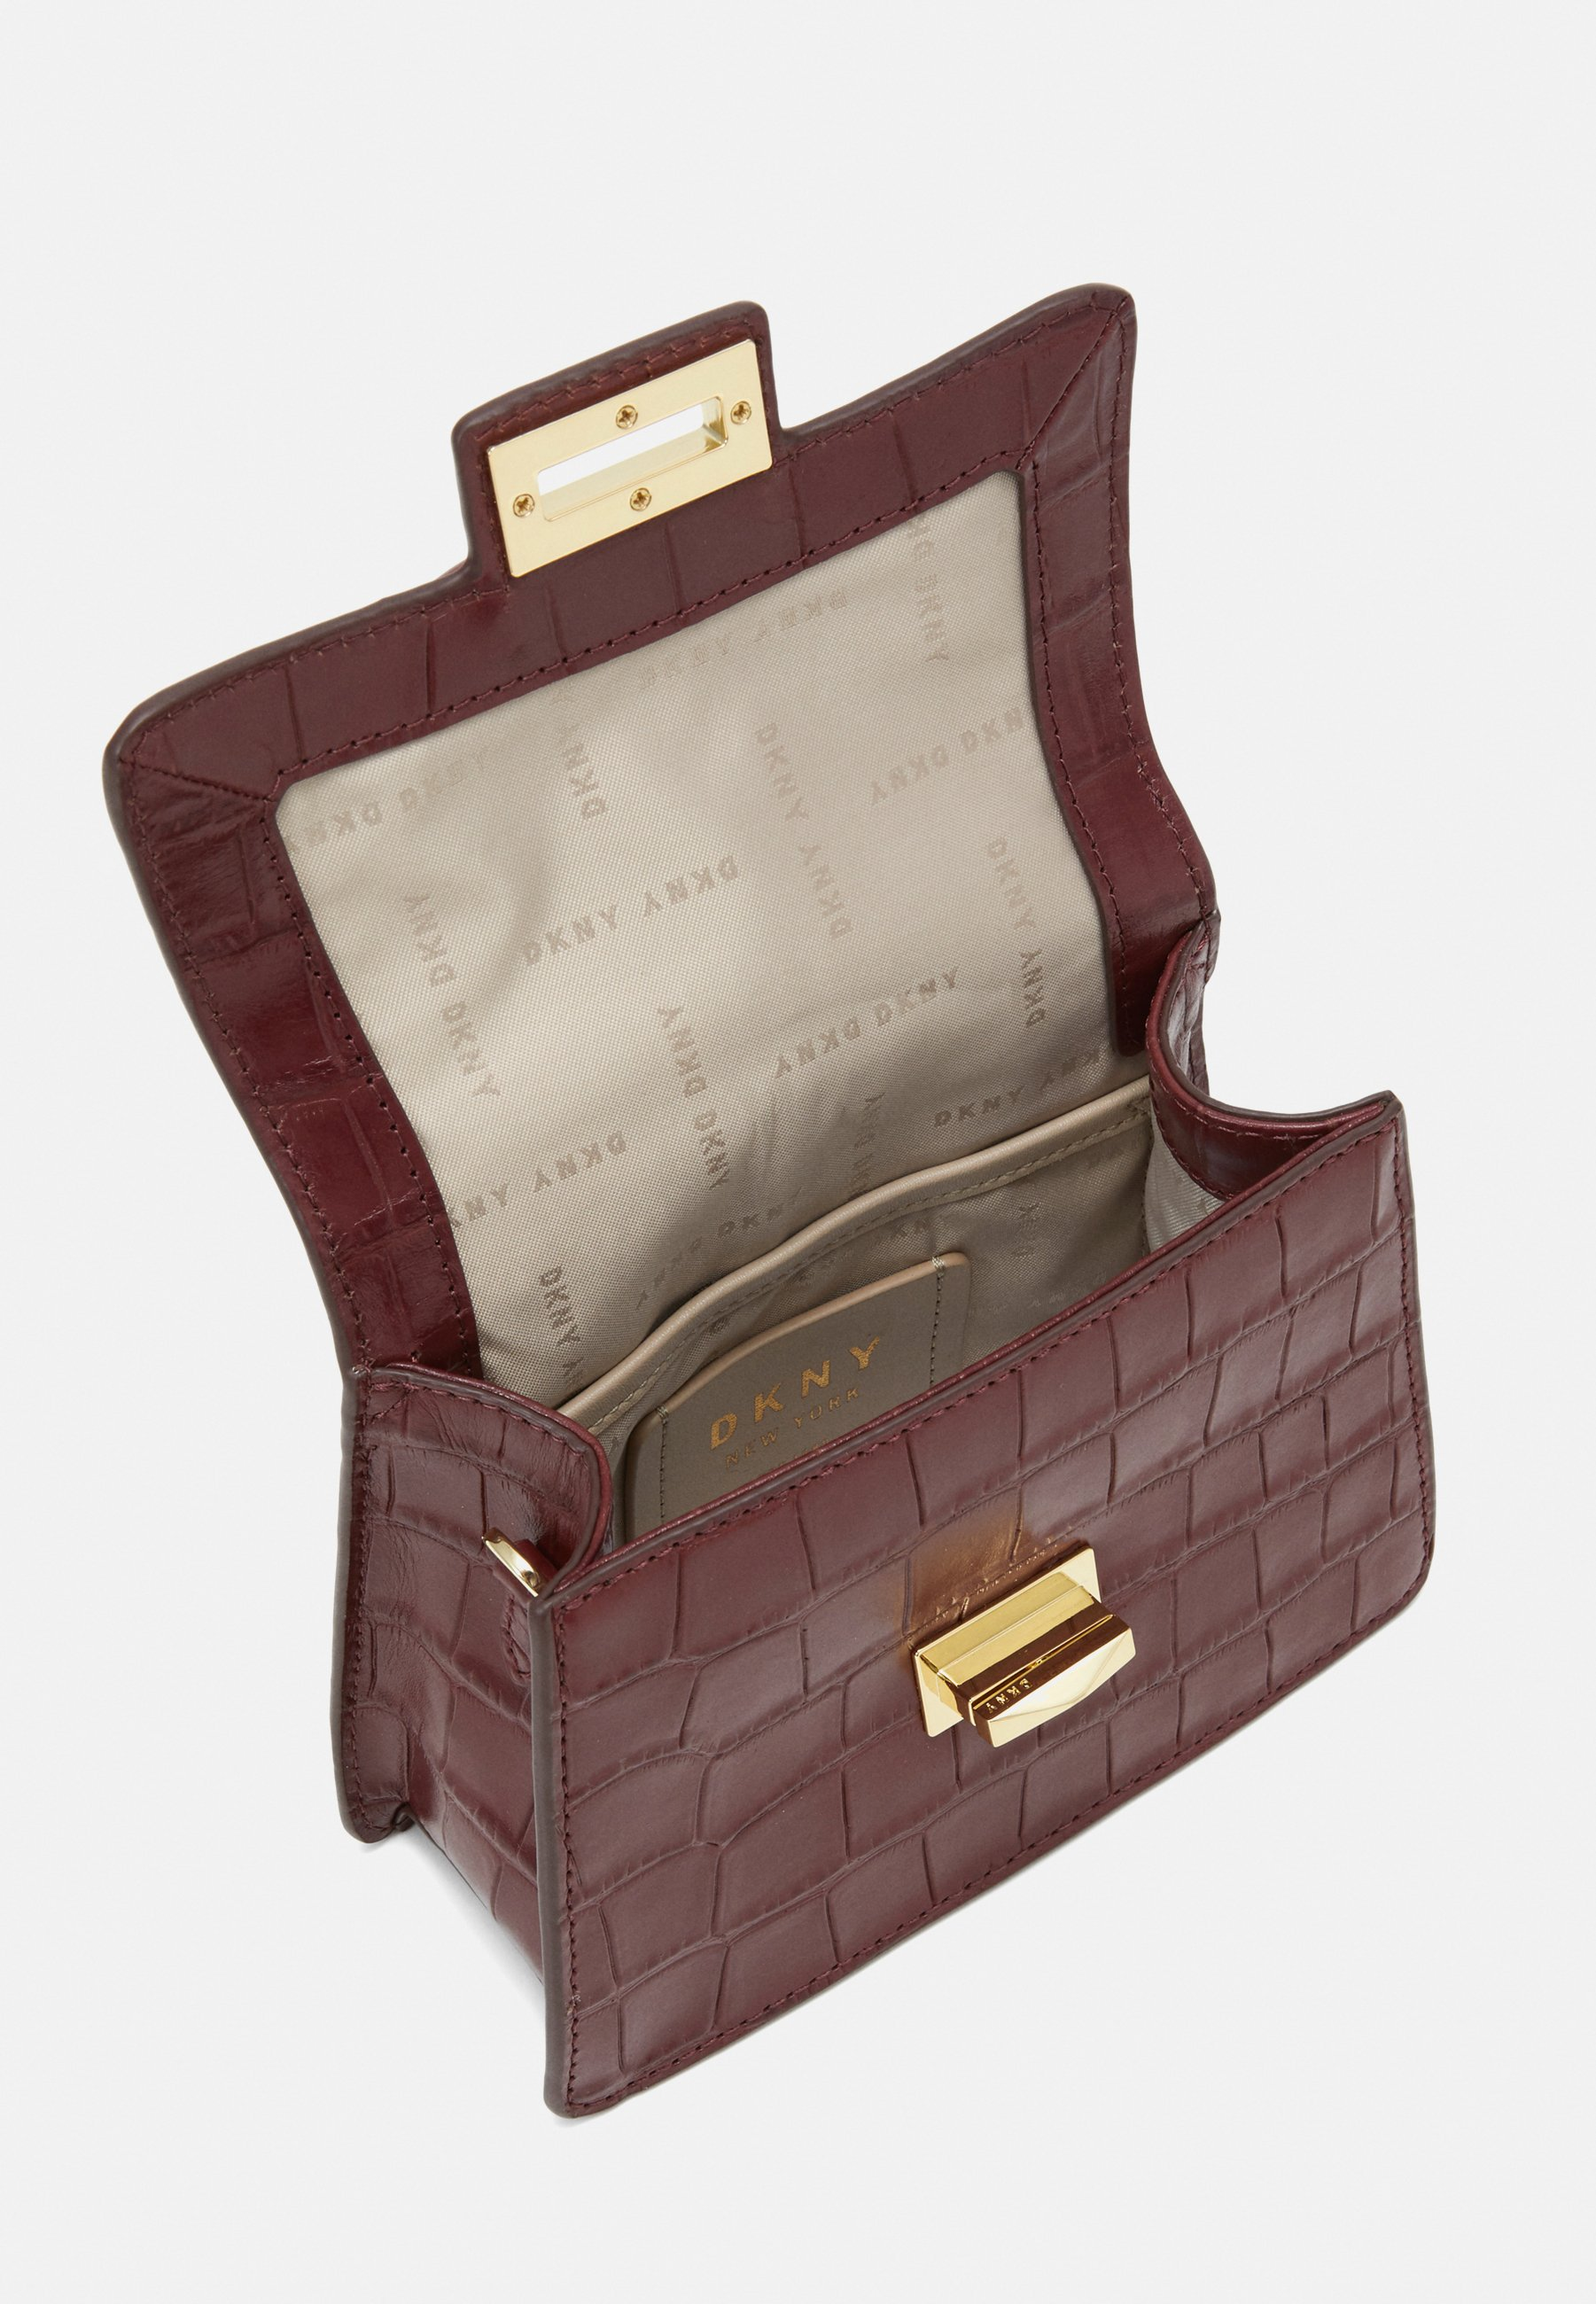 Dkny Jojo Mini Satchel - Handtasche Aged Wine/bordeaux